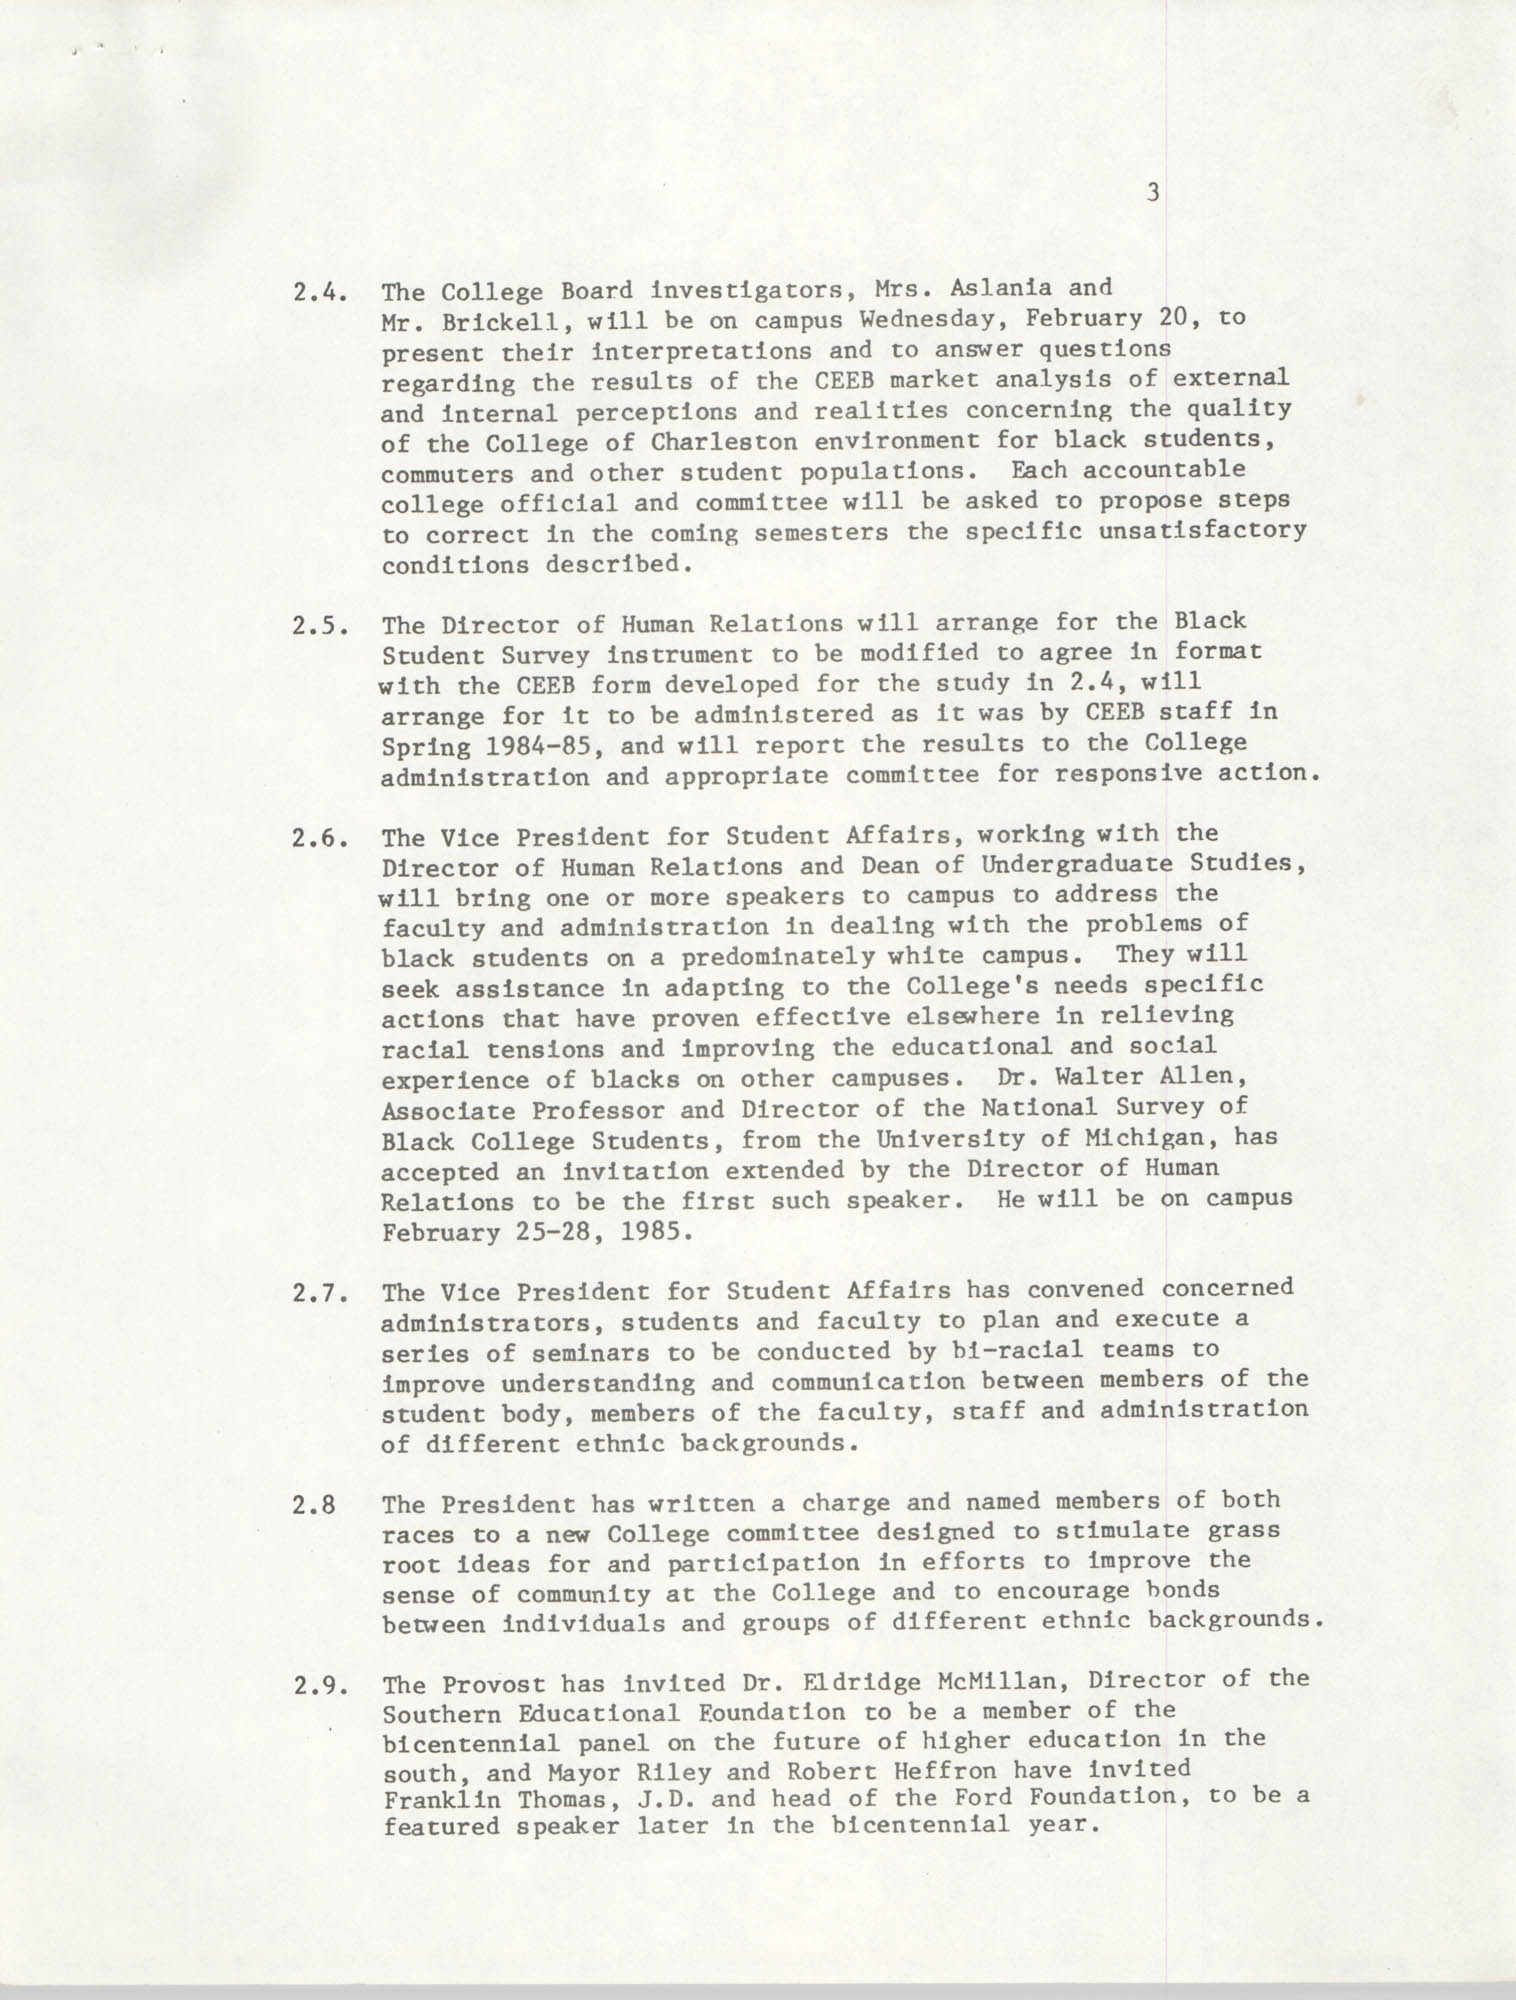 College of Charleston, Updated Summary of Desegregation Efforts, Page 3